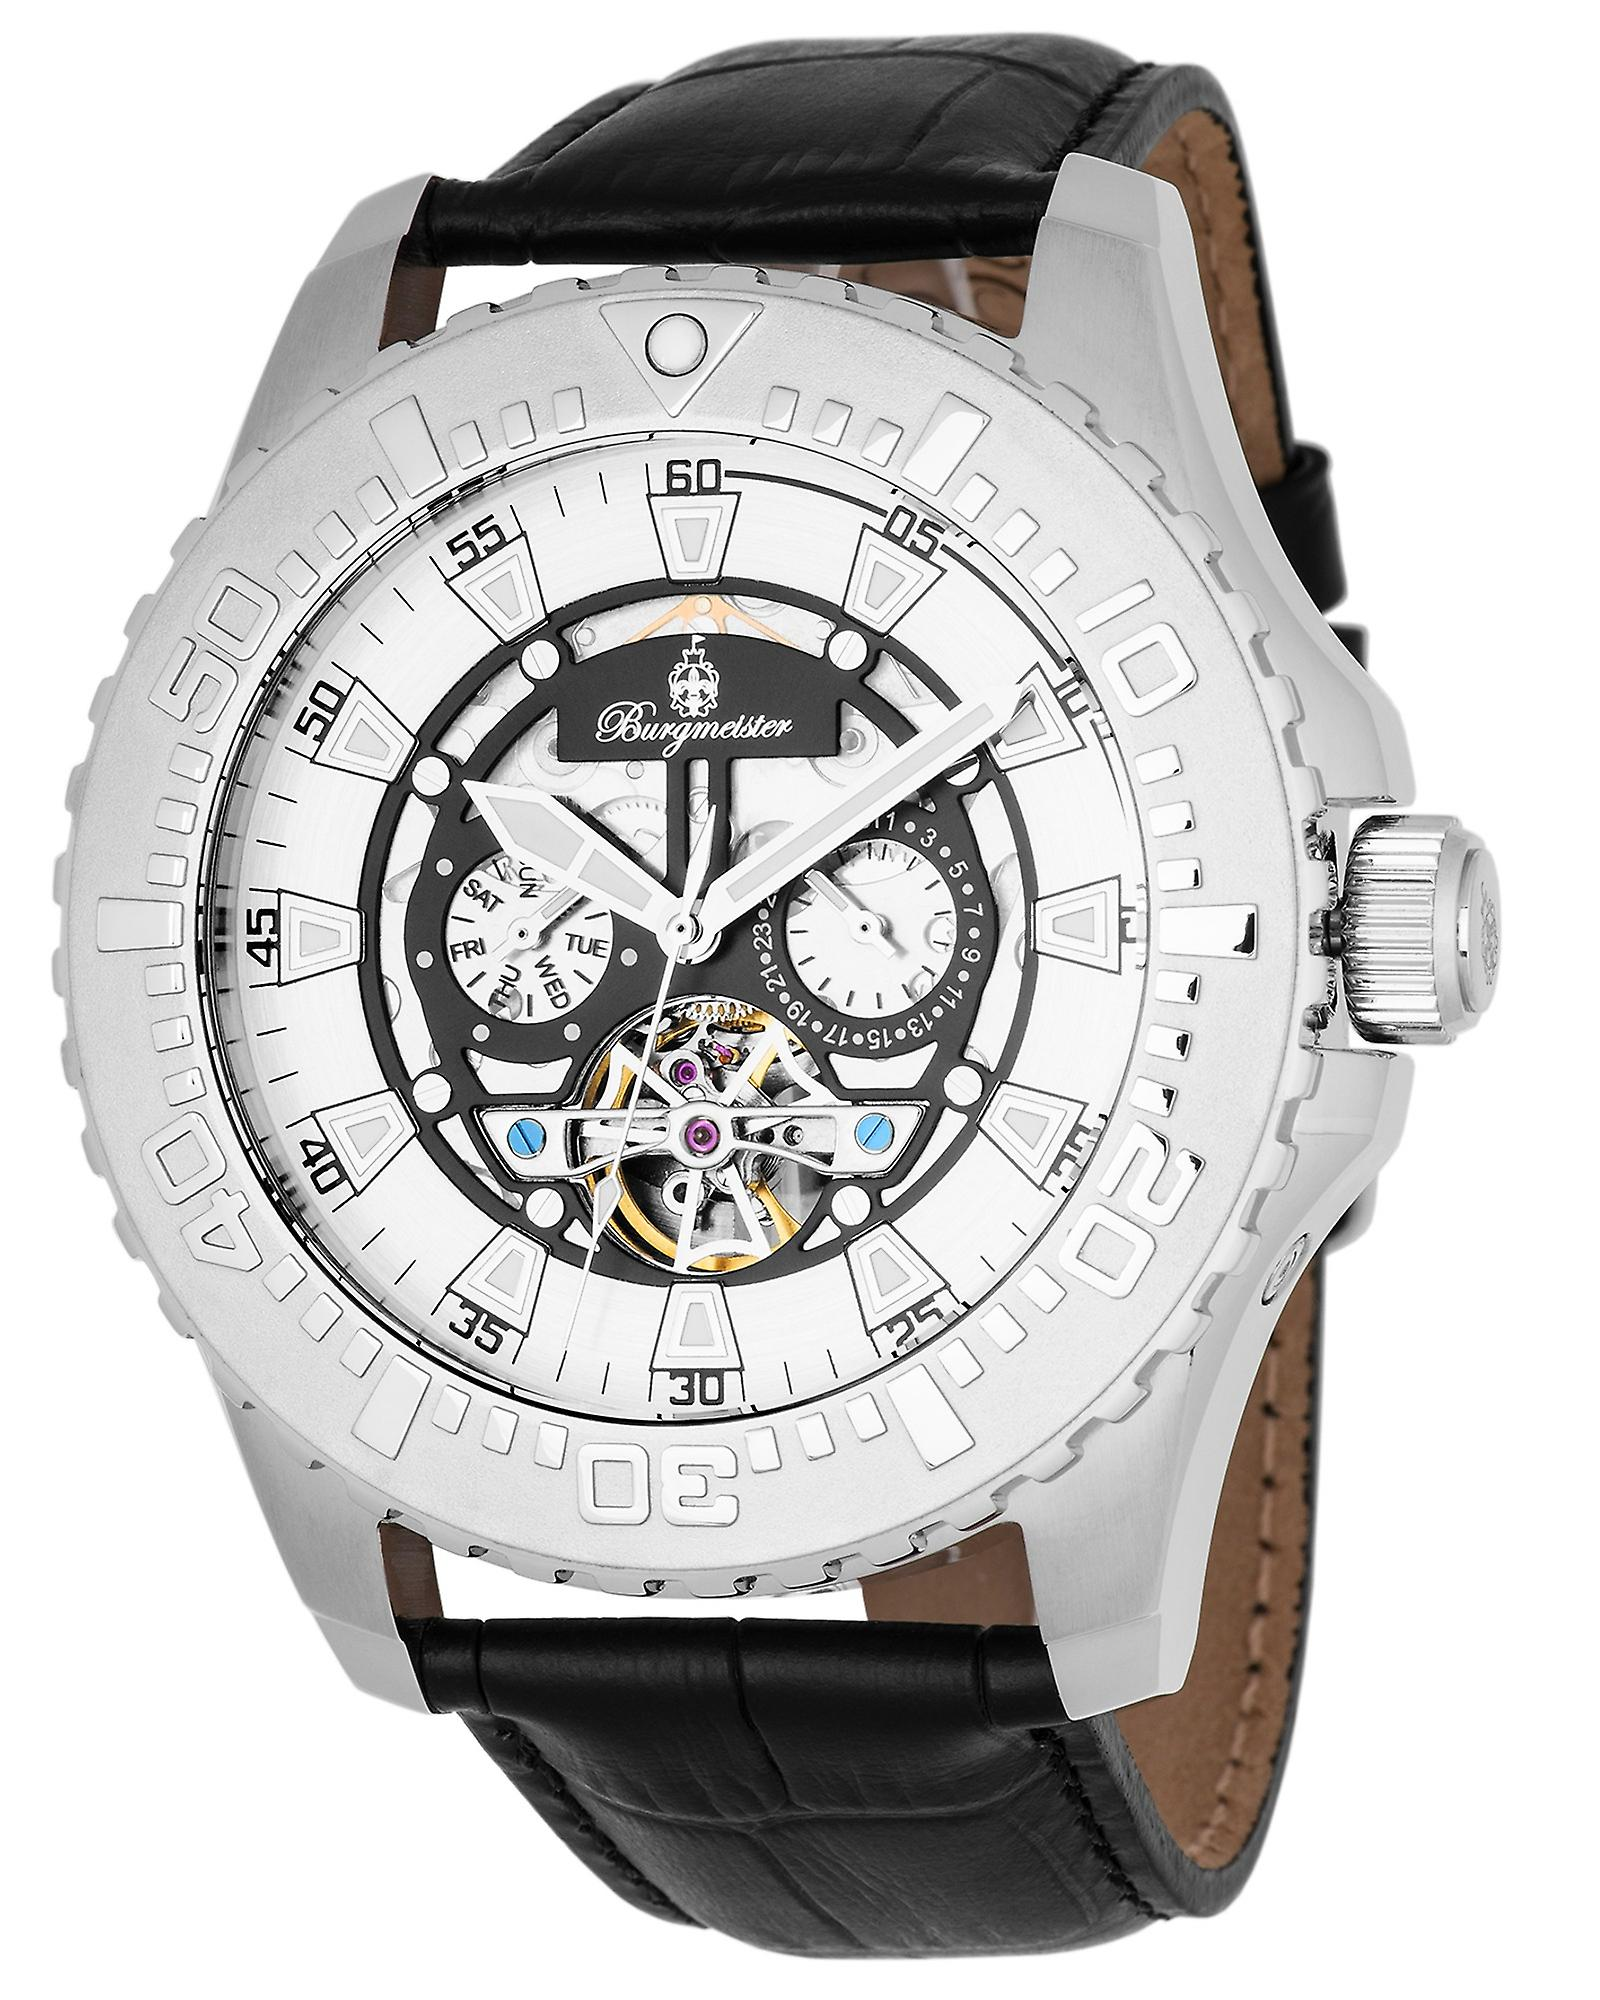 Burgmeister BM339-112 Blackpool, Gents automatic watch, Analogue display - Water resistant, Stylish leather strap, Classic men's watch